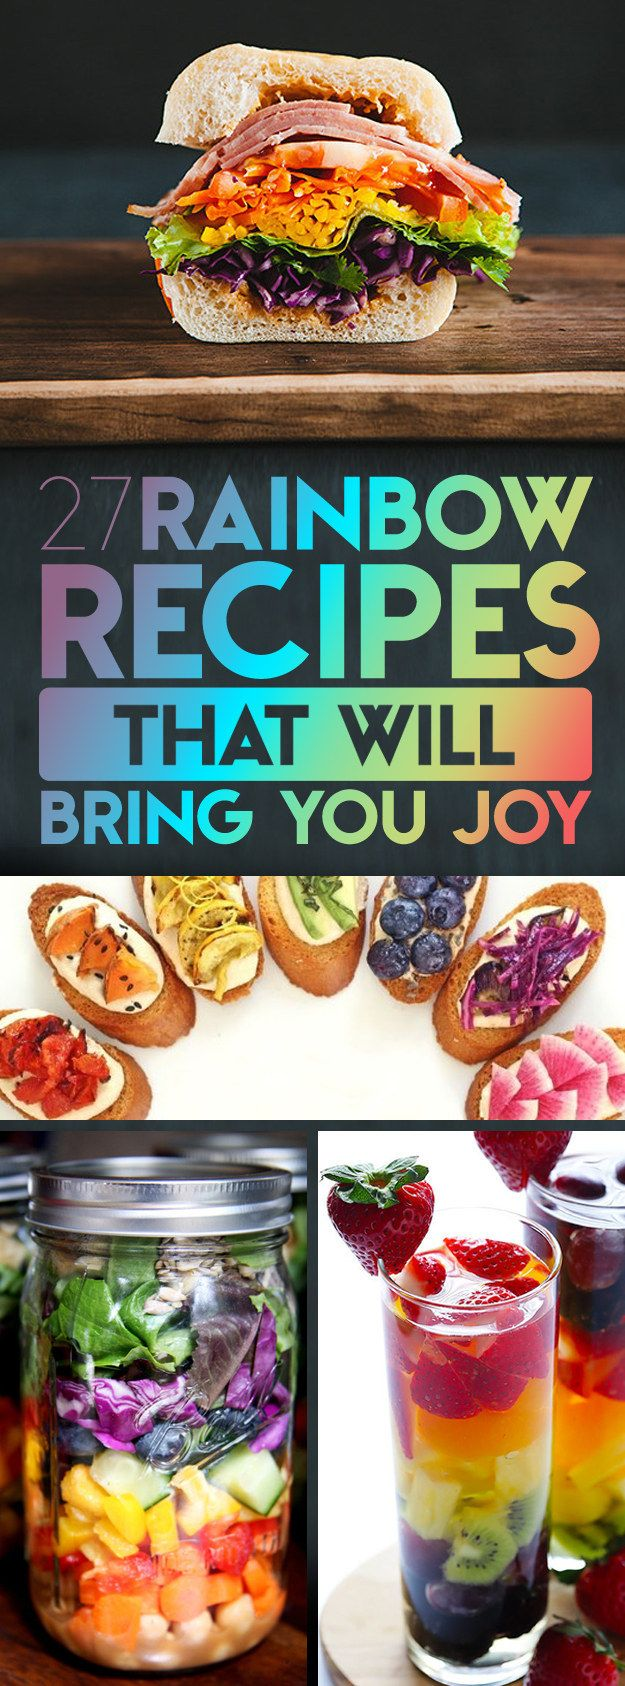 27 Rainbow Recipes That Will Bring Joy To Your Life I'm not going to make a Skittles joke, but you should feel free to. Courtesy of Buzzfeed 1. Rainbow Veggie Flatbread Pizza gimmesomeoven.com I can only deal with Healthy Pizza if it's Healthy Rainbow pizza. Get the recipe. 2. Raspberry Rainbow Bowl amillionmiless.com This …